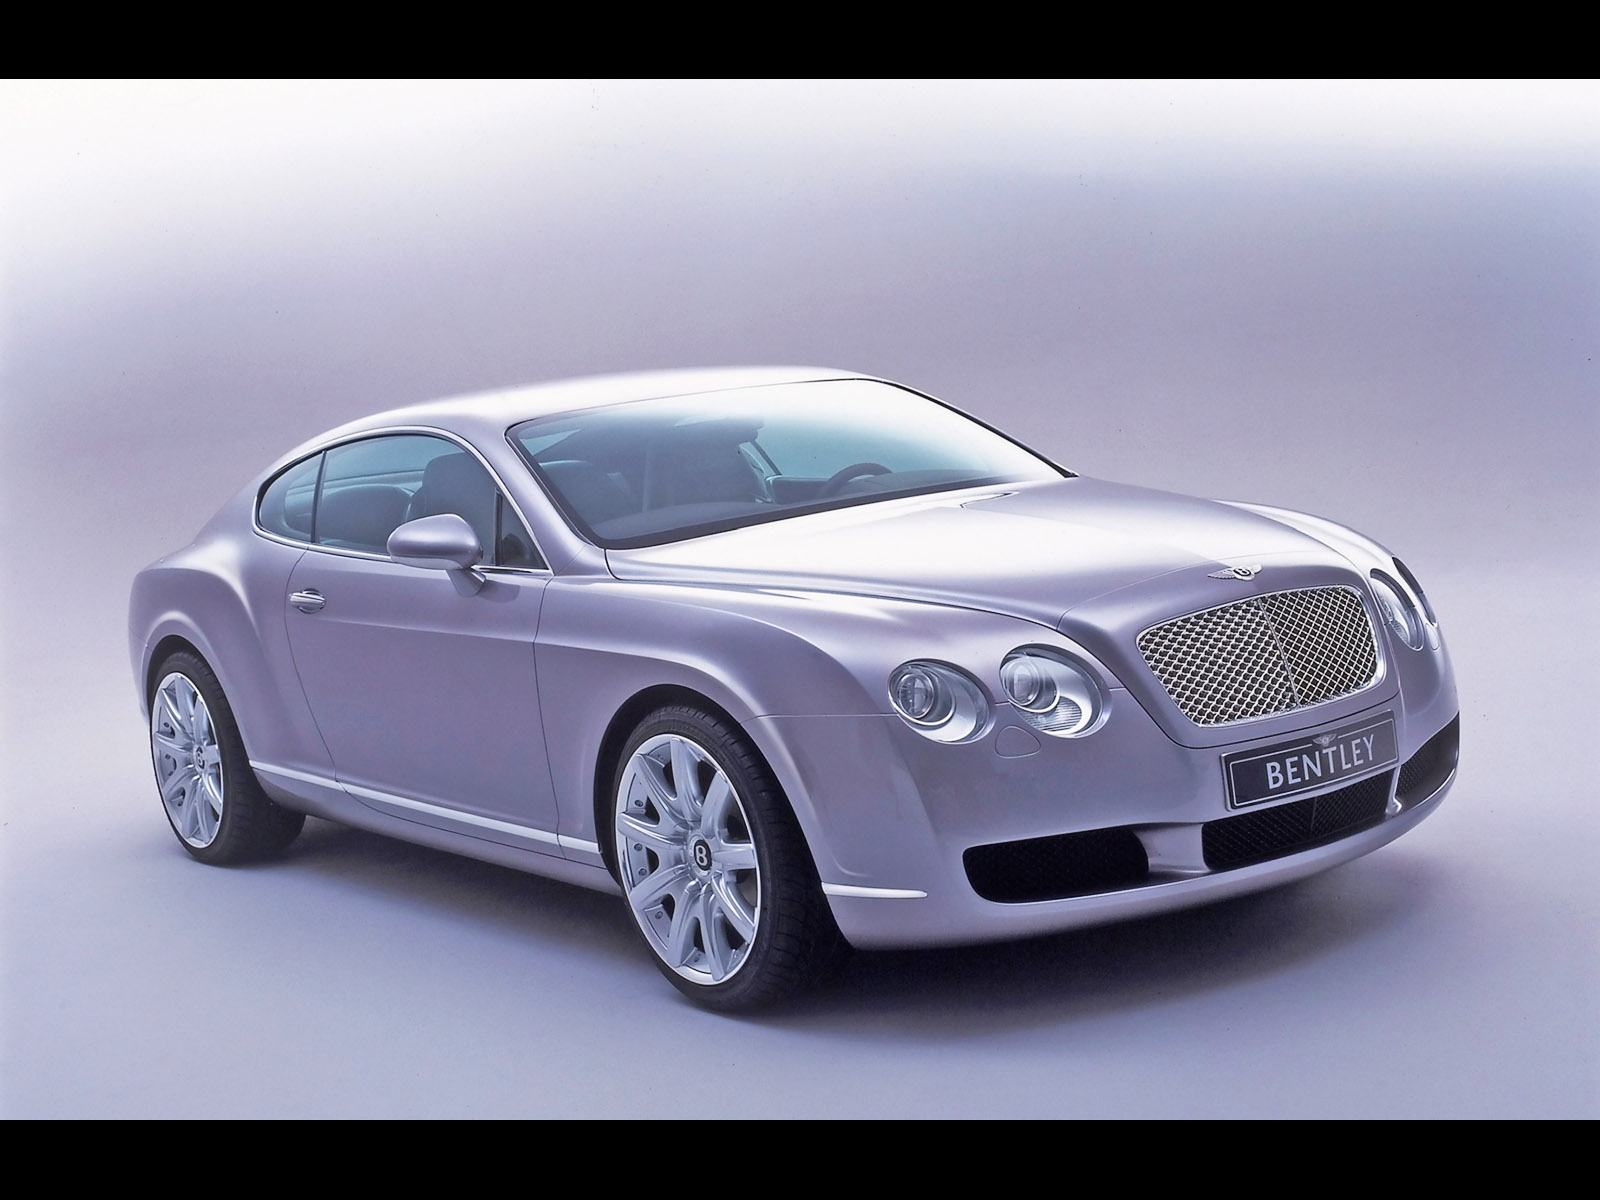 2004 Bentley Continental Gt #16